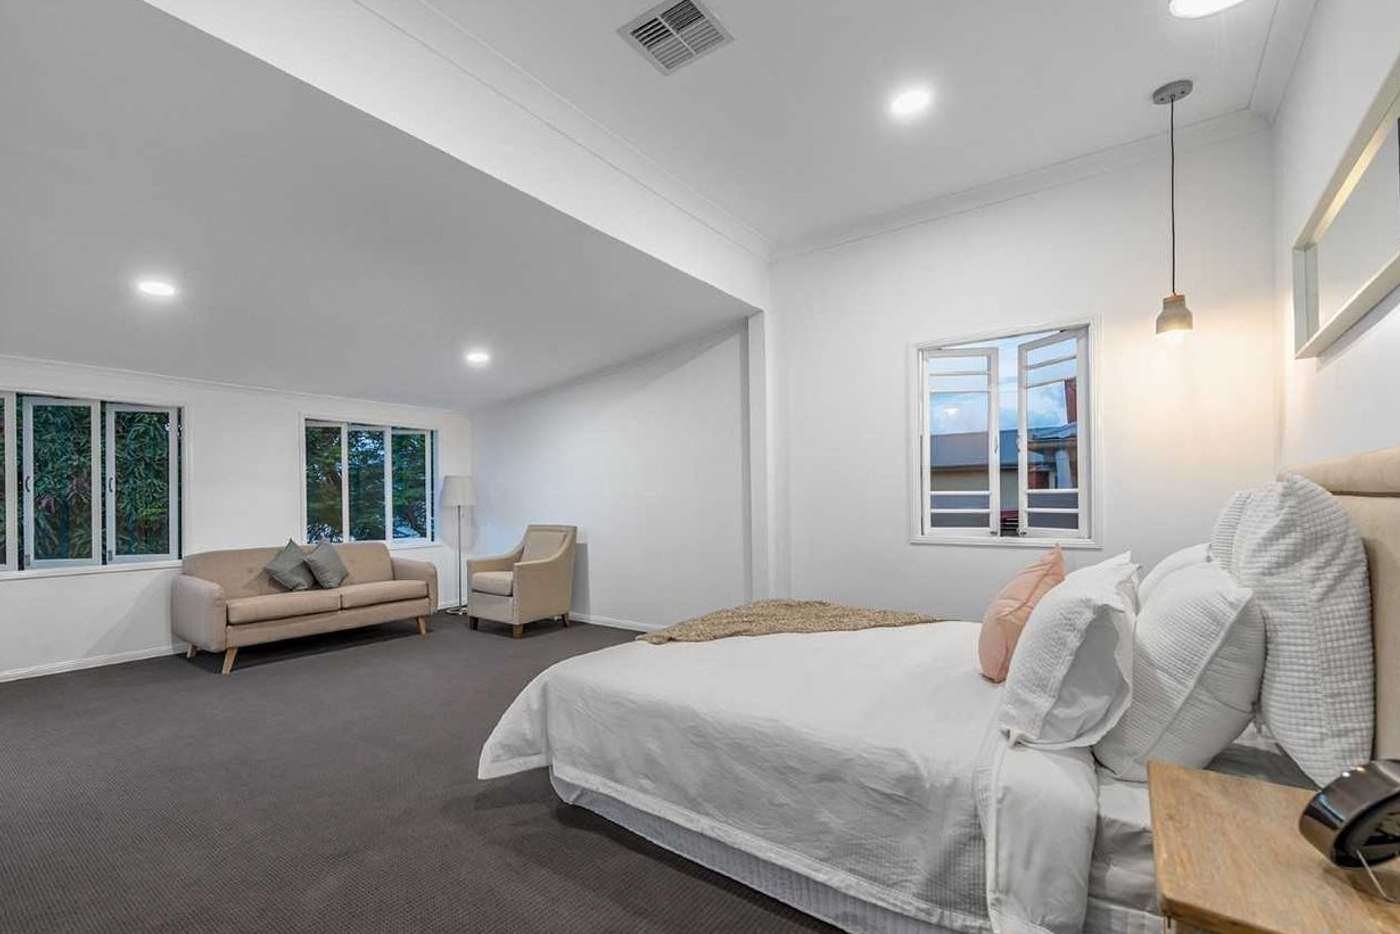 Seventh view of Homely house listing, 70 Dobson Street, Ascot QLD 4007